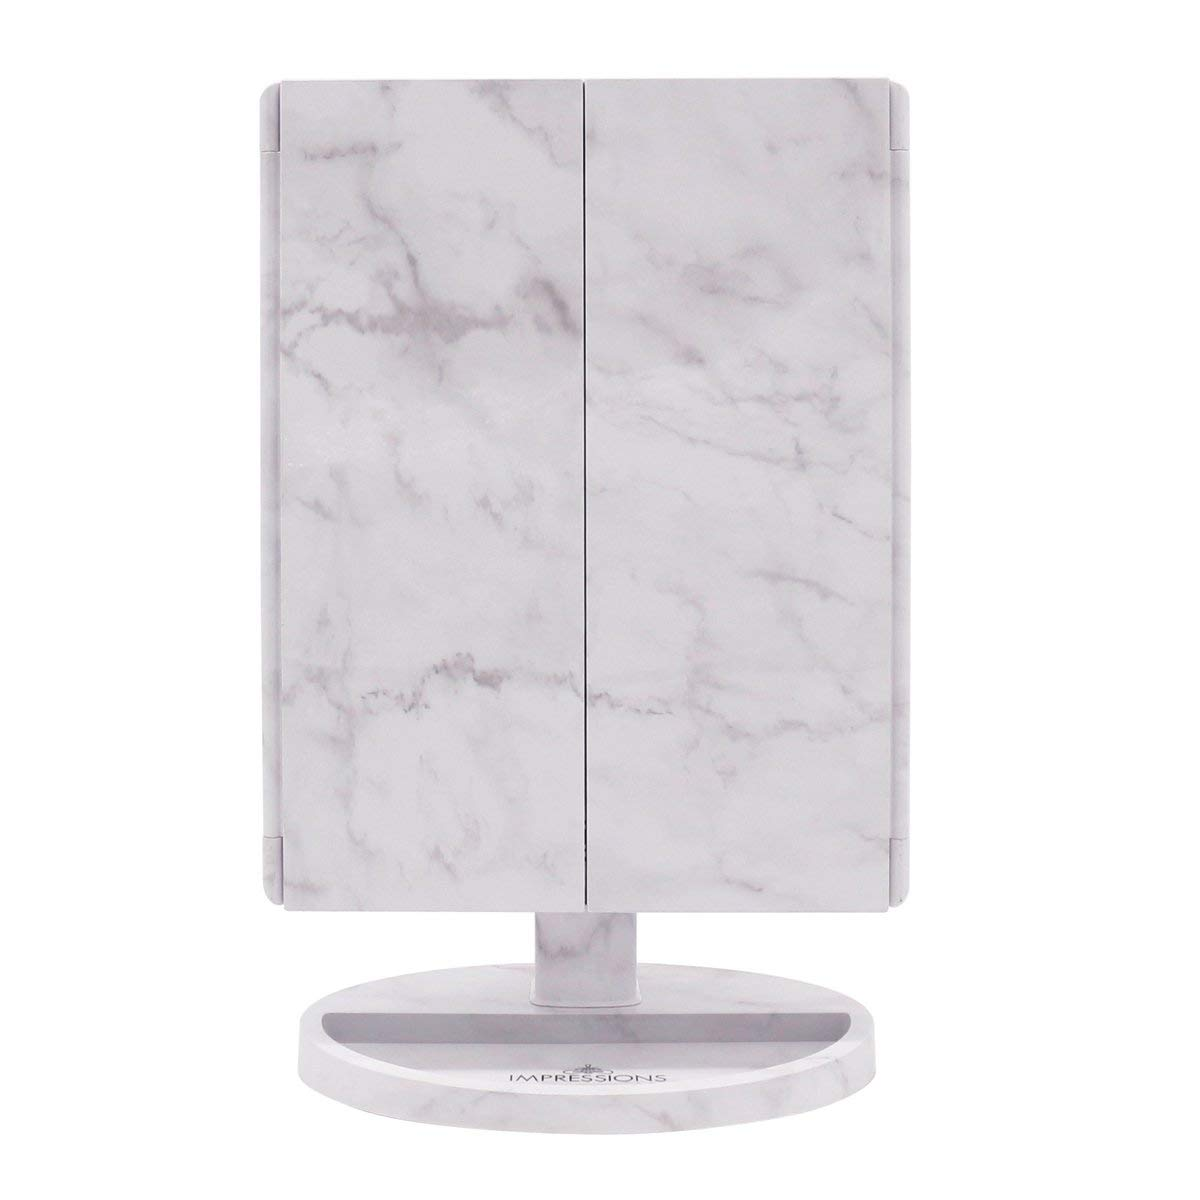 New Brushed Nickel Modern Frosted Bathroom Vanity Light Fixture Contemporary Sleek Design Vertical or Horizontal LED Wall Sconce 3000K Warm White 24